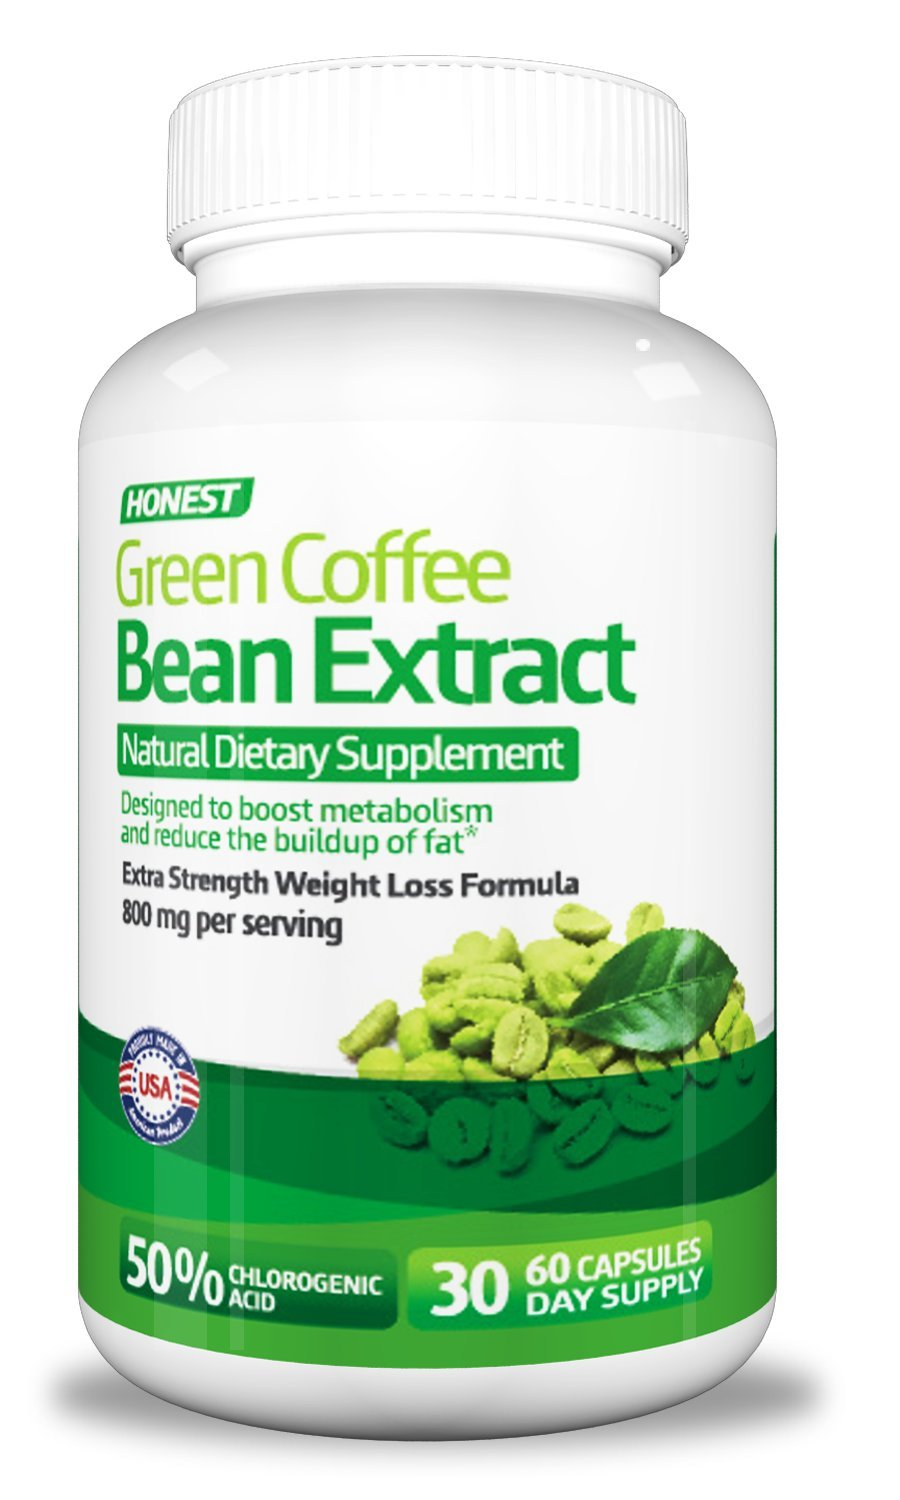 Honest Green Coffee Bean Extract - New with Proprietary Metabolism and Weight Loss Blend by Honest Green Coffee Bean Extract